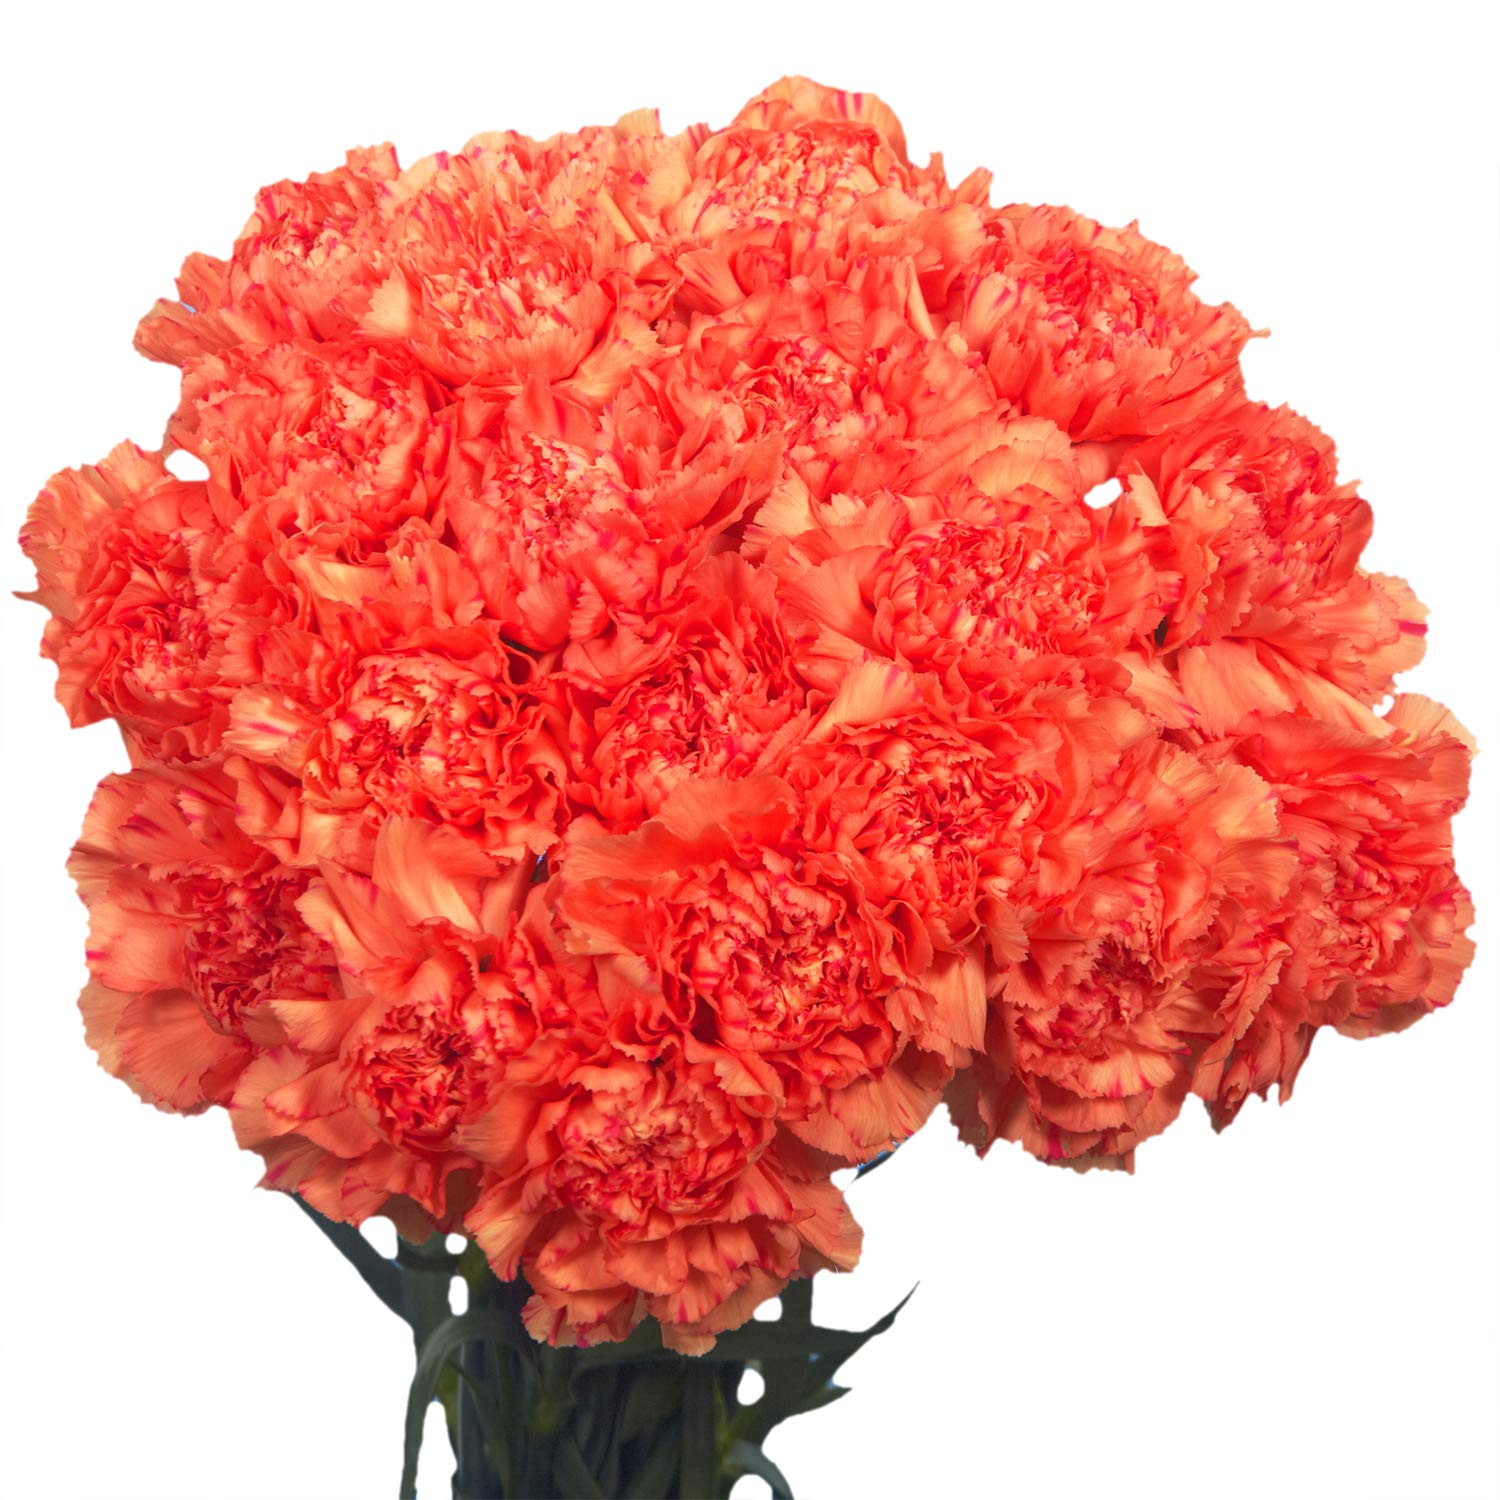 GlobalRose 100 Fresh Cut Orange Carnations - Fresh Flowers Wholesale Express Delivery by GlobalRose (Image #1)